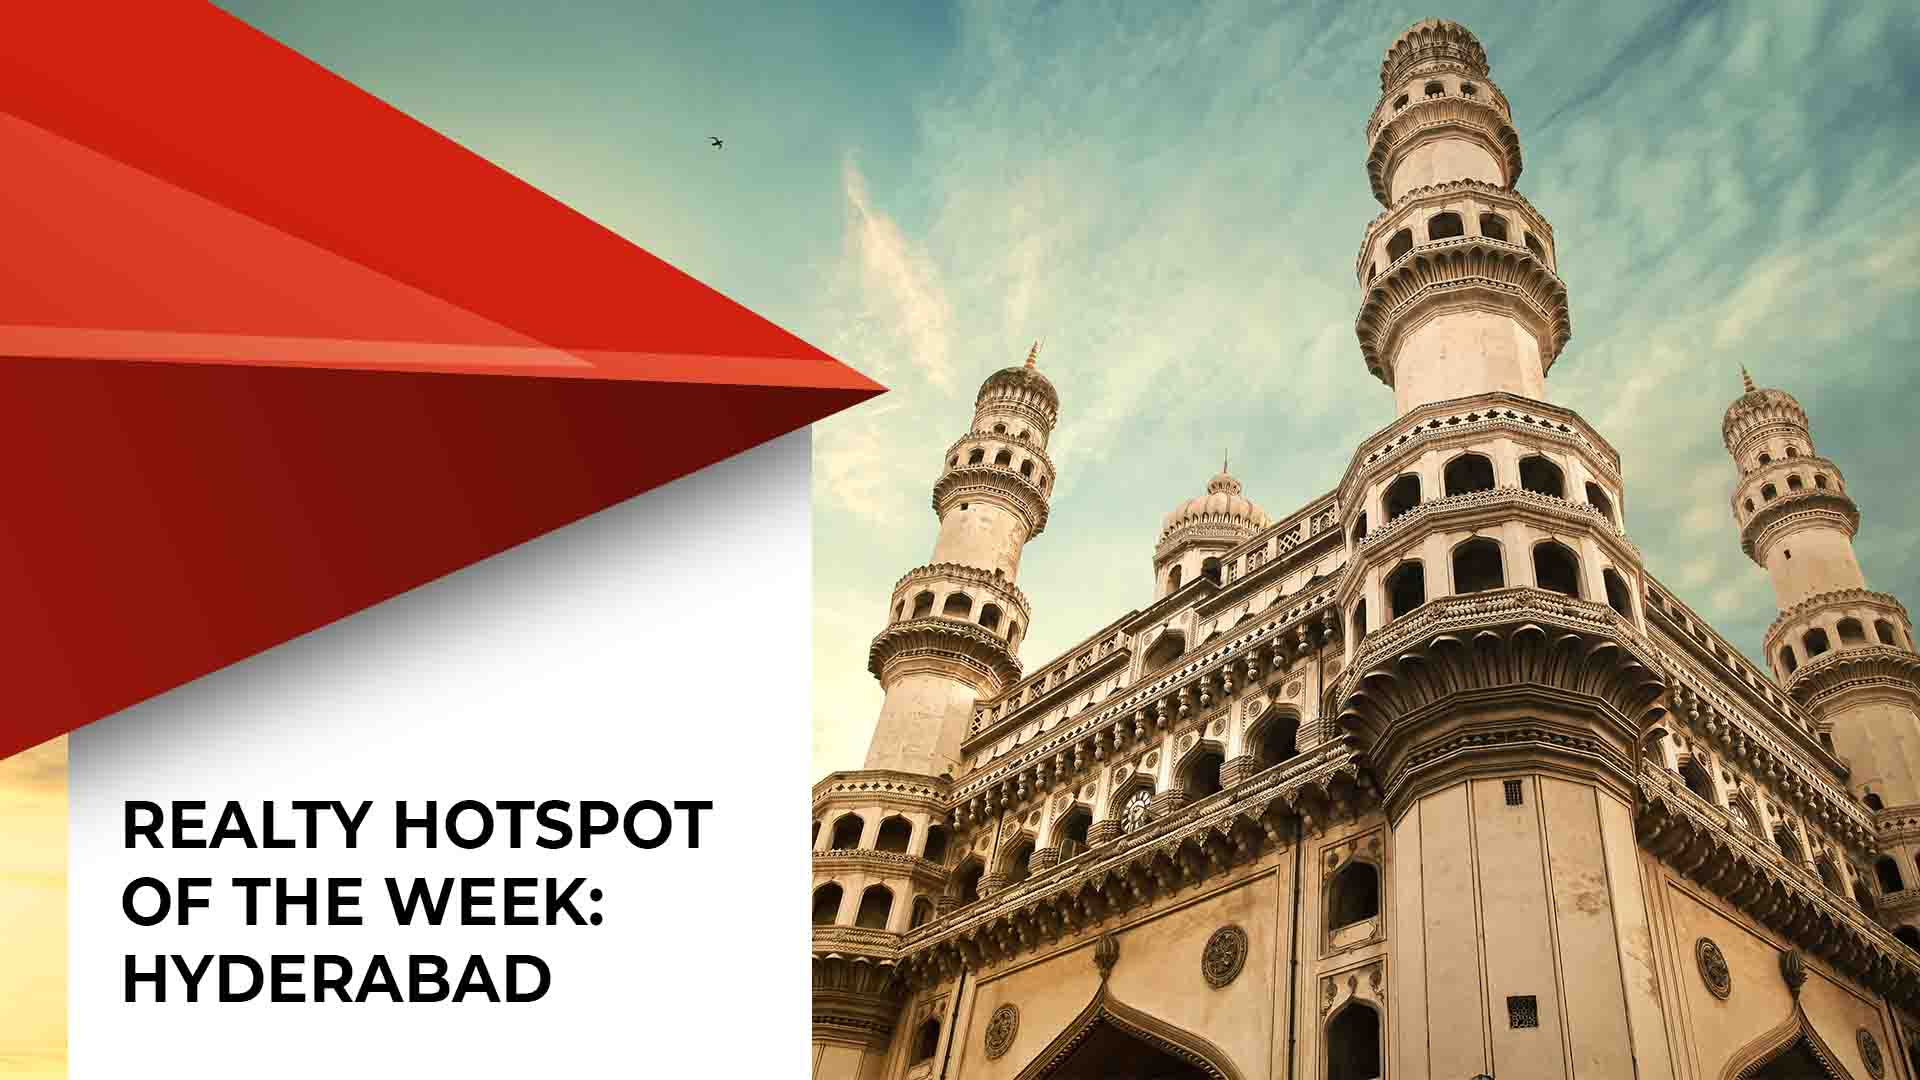 Hyderabad - The New Growth Corridor For Real Estate